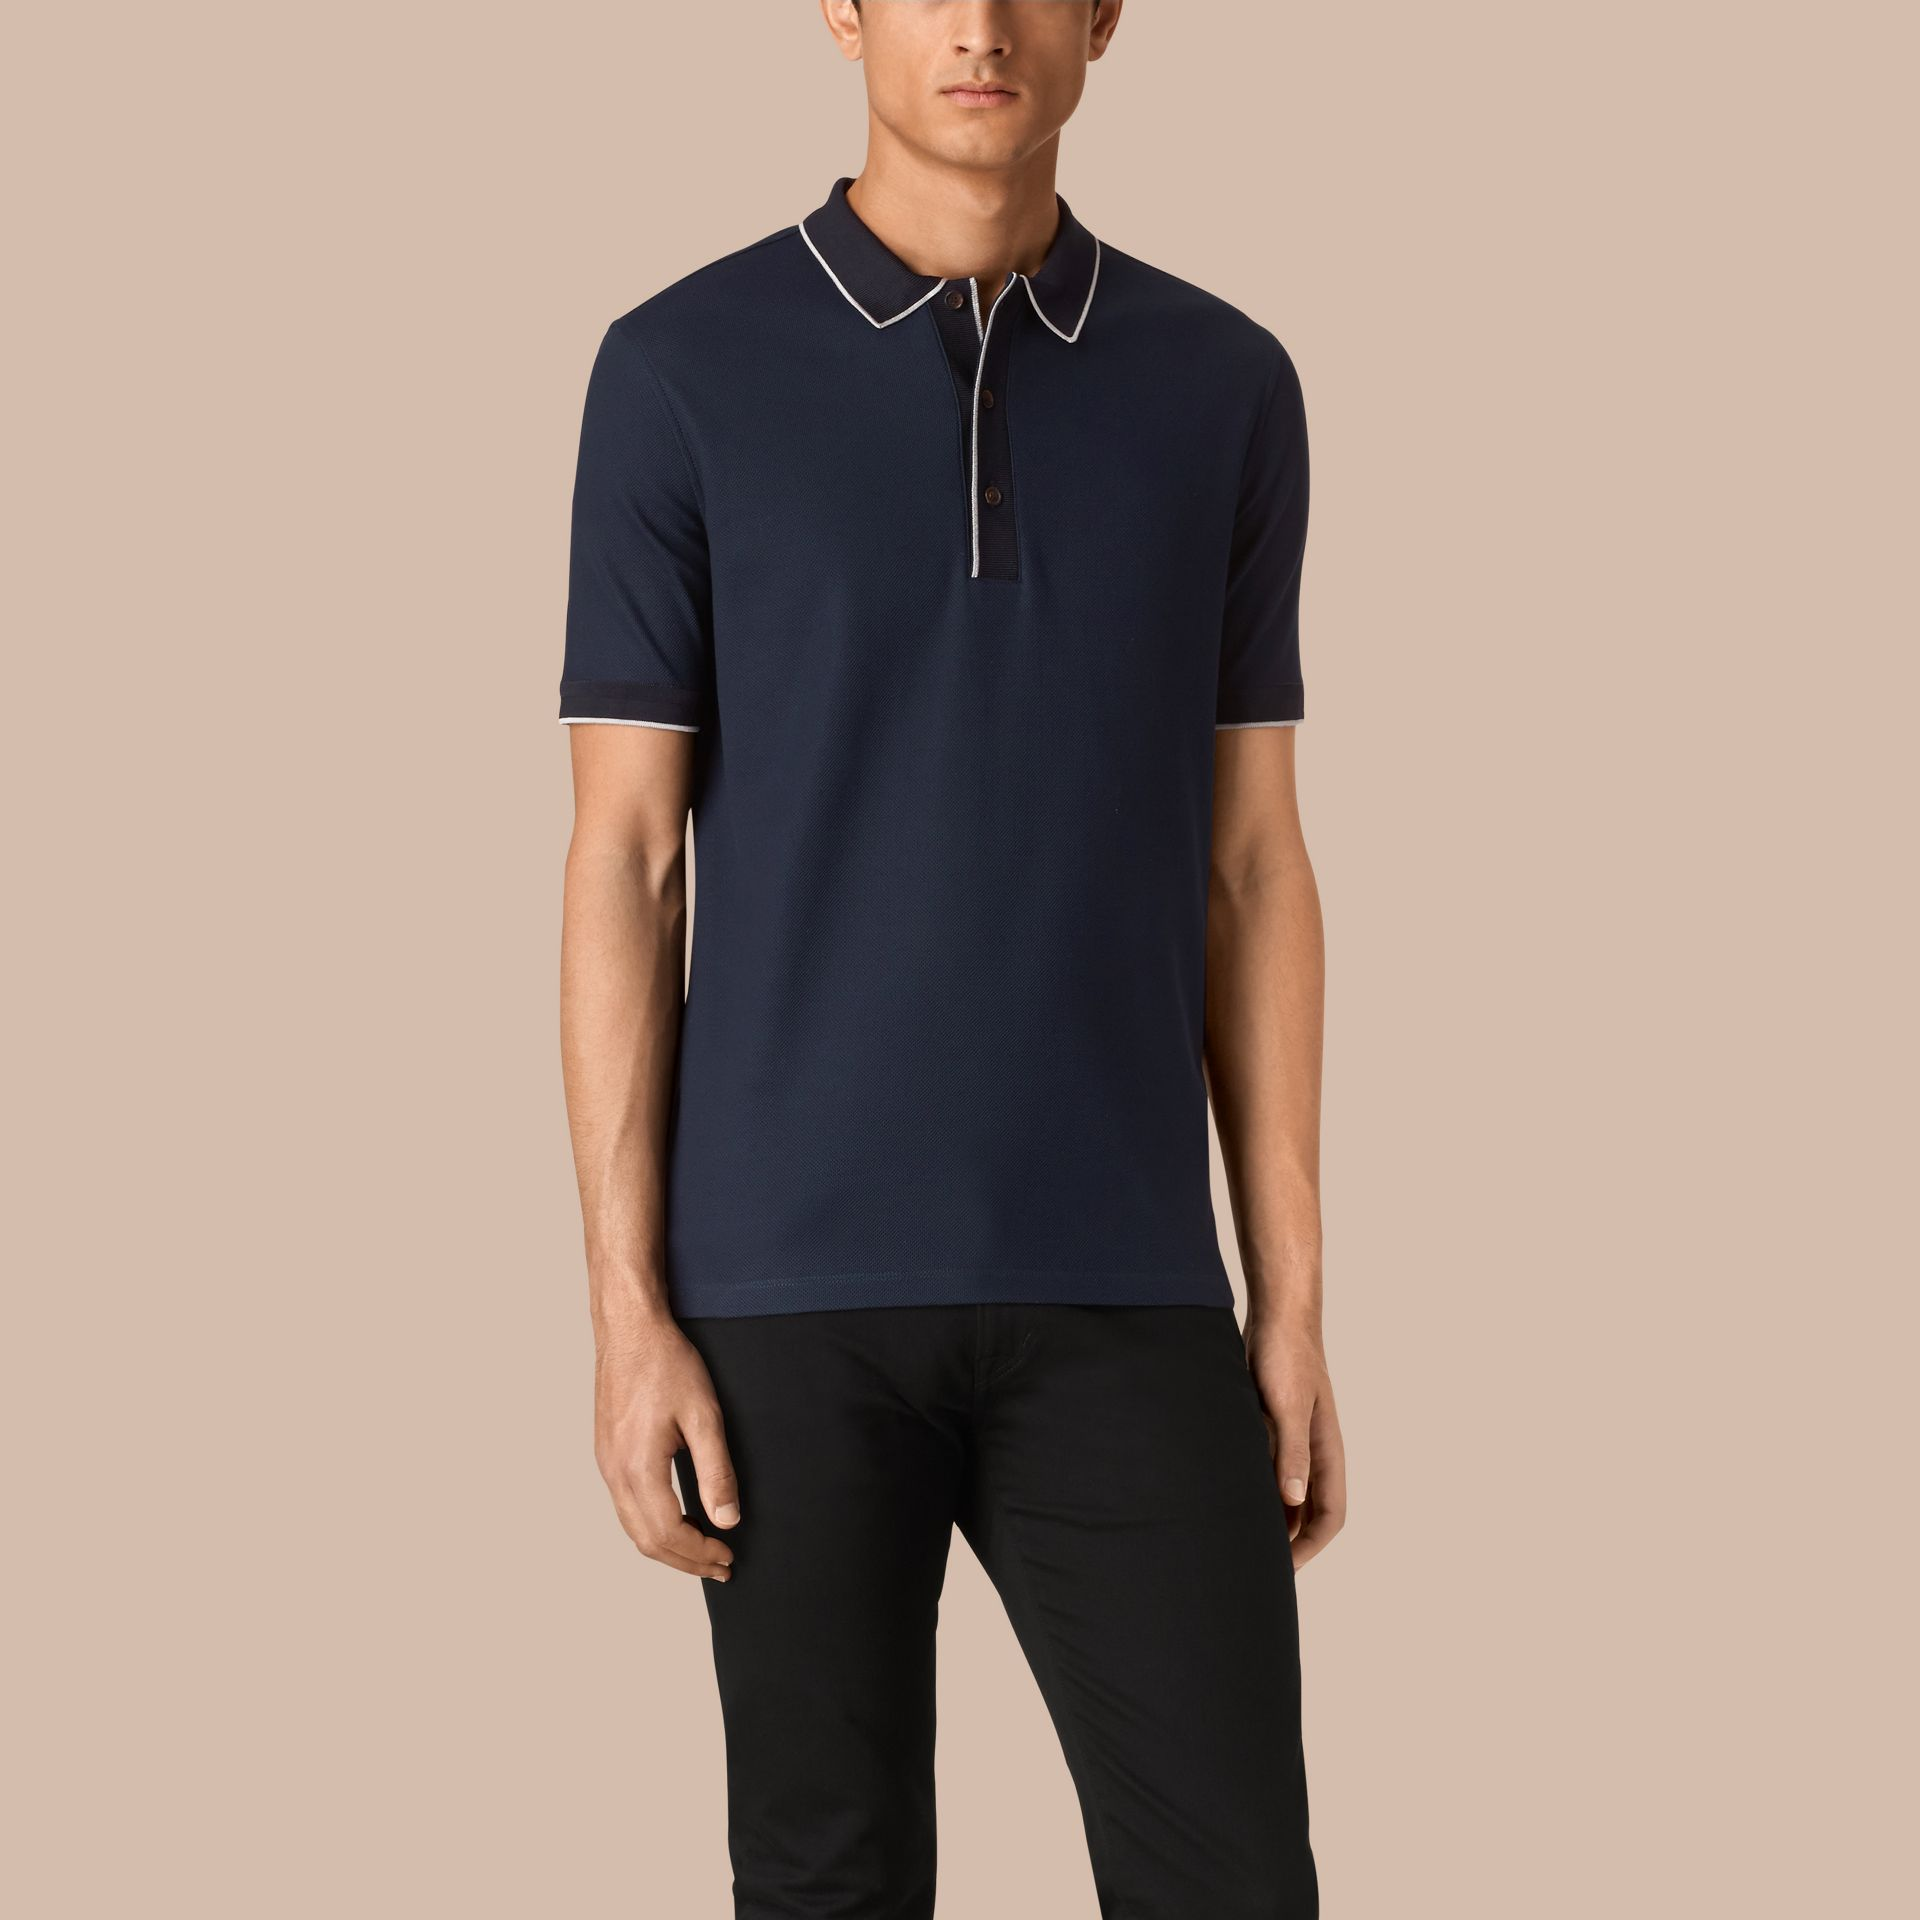 Navy/grey Contrast Tipping Cotton Piqué Polo Shirt Navy/grey - gallery image 1